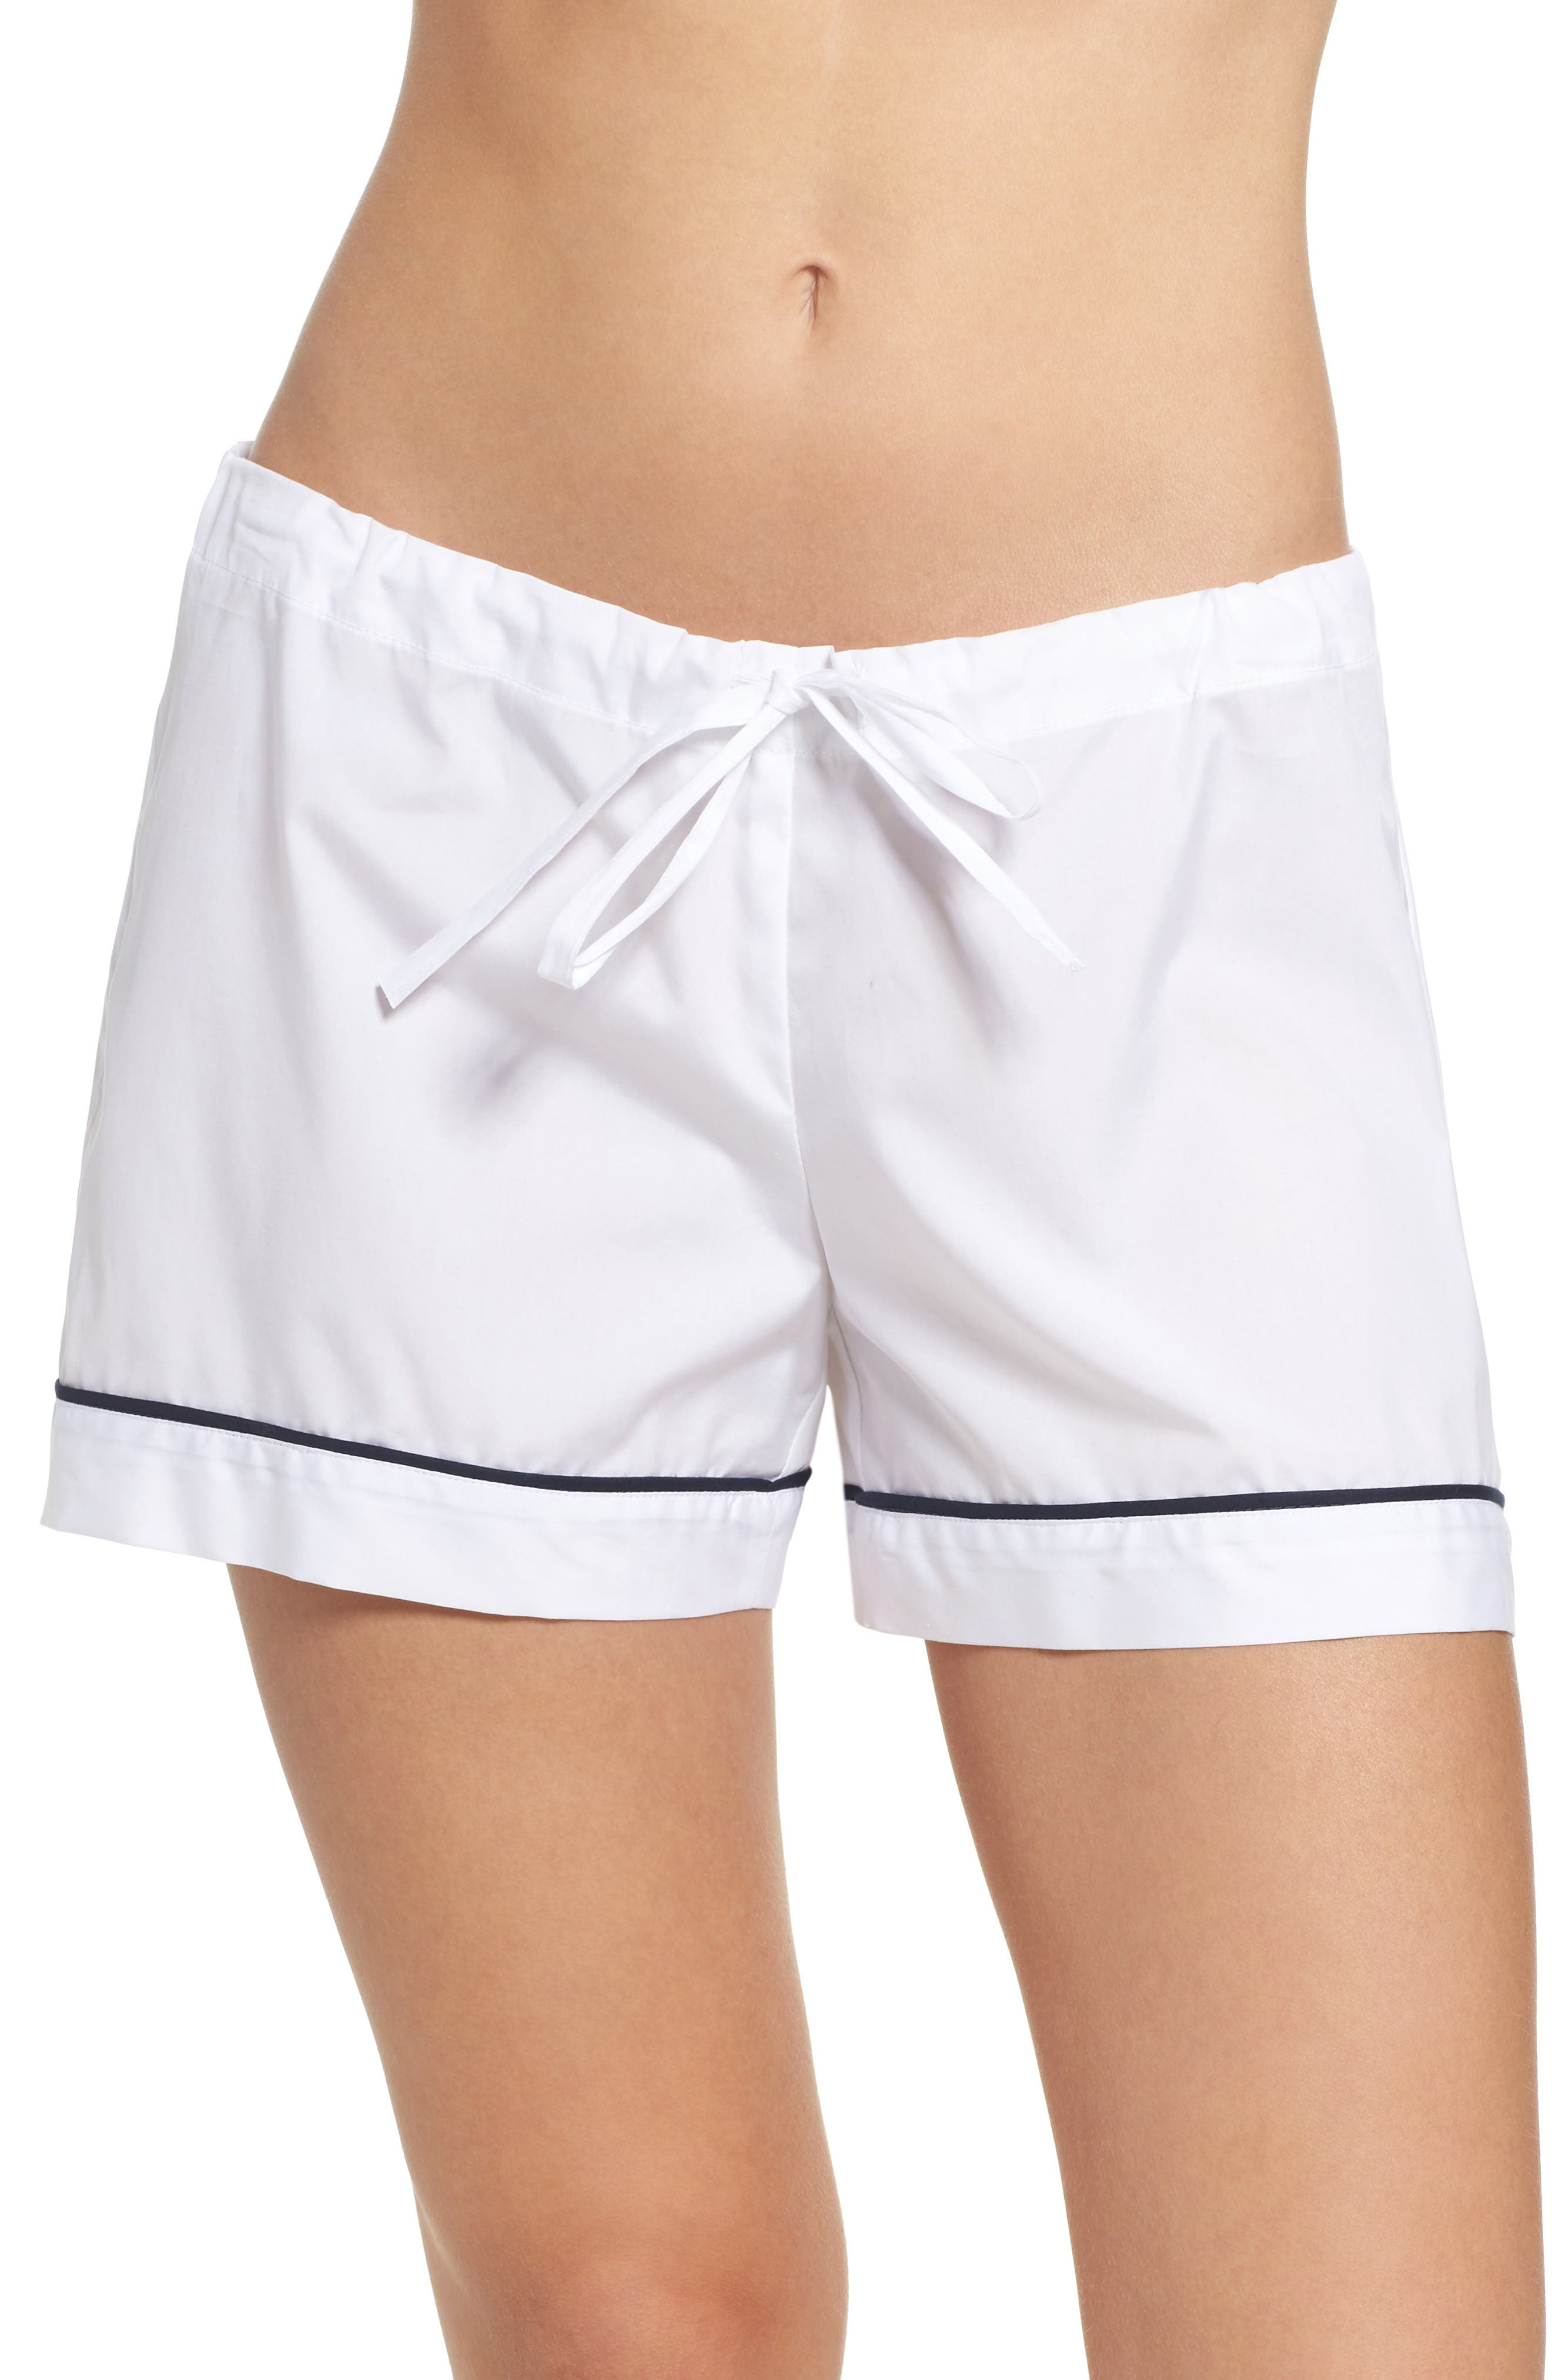 Alternate Image 1 Selected - Pour Les Femmes Piped Pajama Shorts